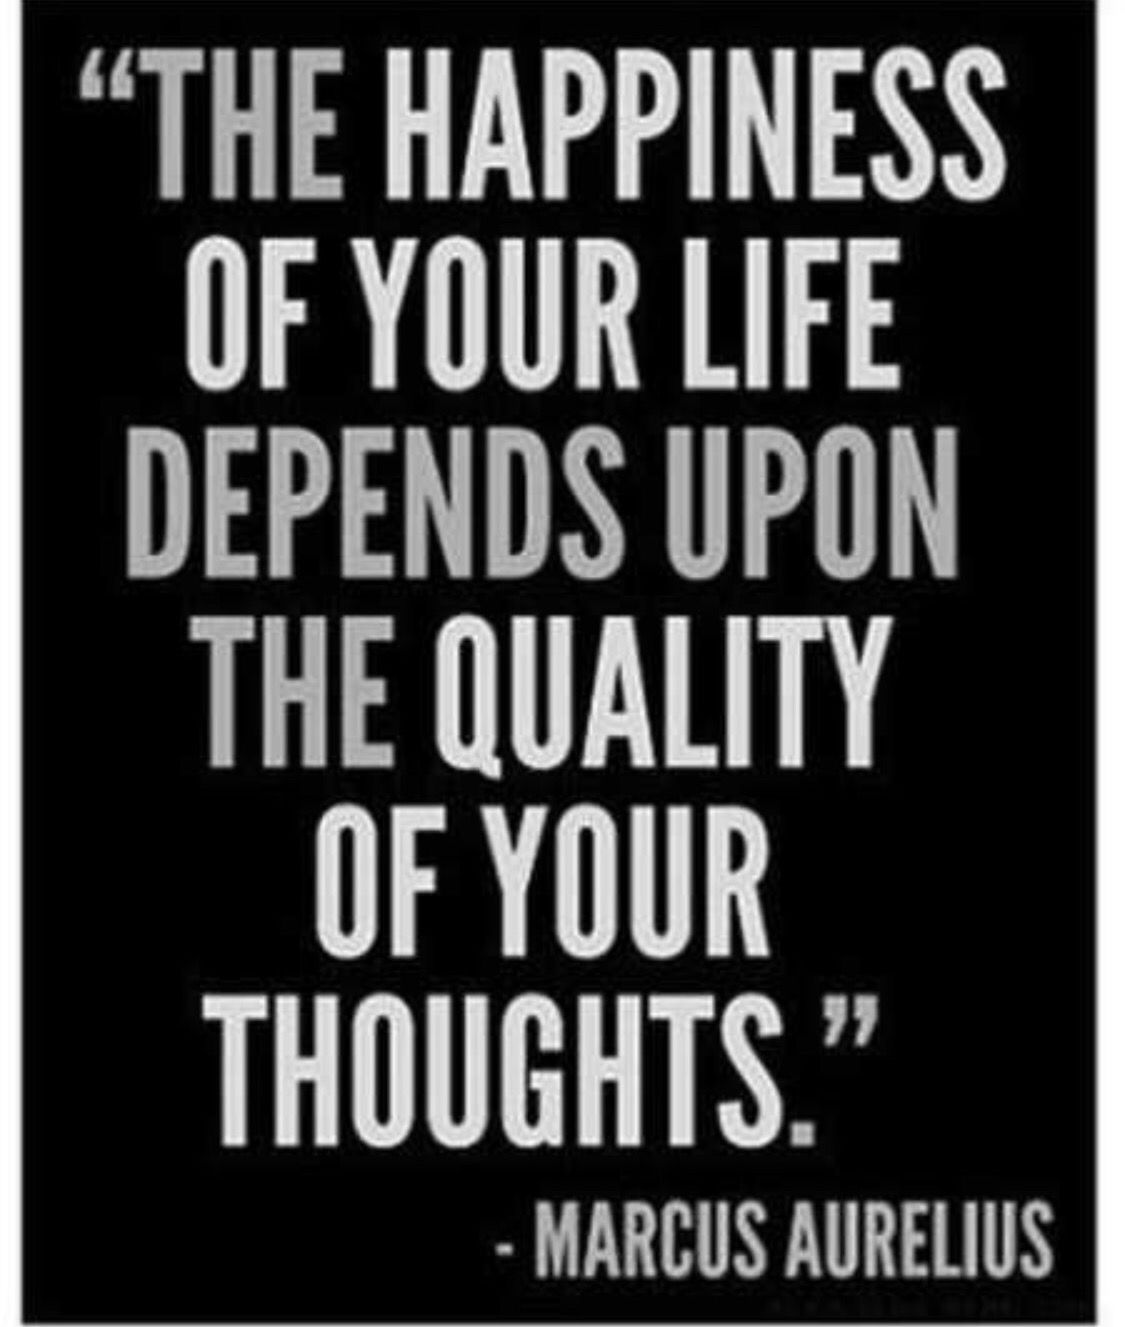 Sayings On Life Inspirational Quotes Pinelaine Cell On Words Of Wisdom  Pinterest